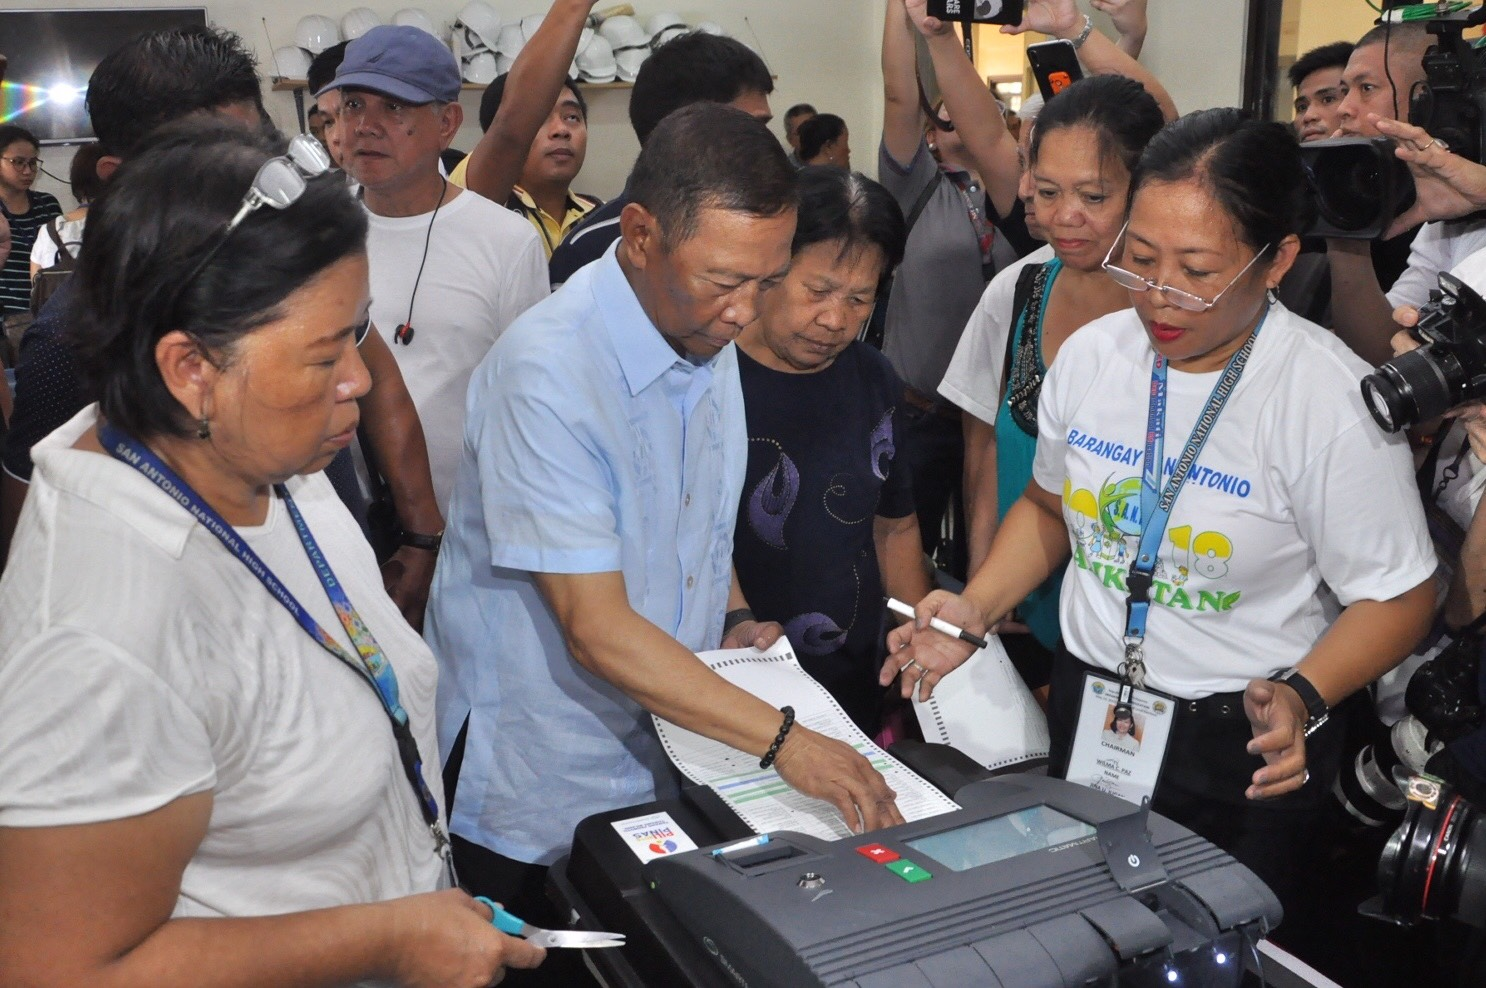 REJECTED. Ex-vice president Jejomar Binay tries to load his ballot into the vote-counting machine at San Antonio National High School on May 13, 2019. Photo by Jay Ganzon/Rappler